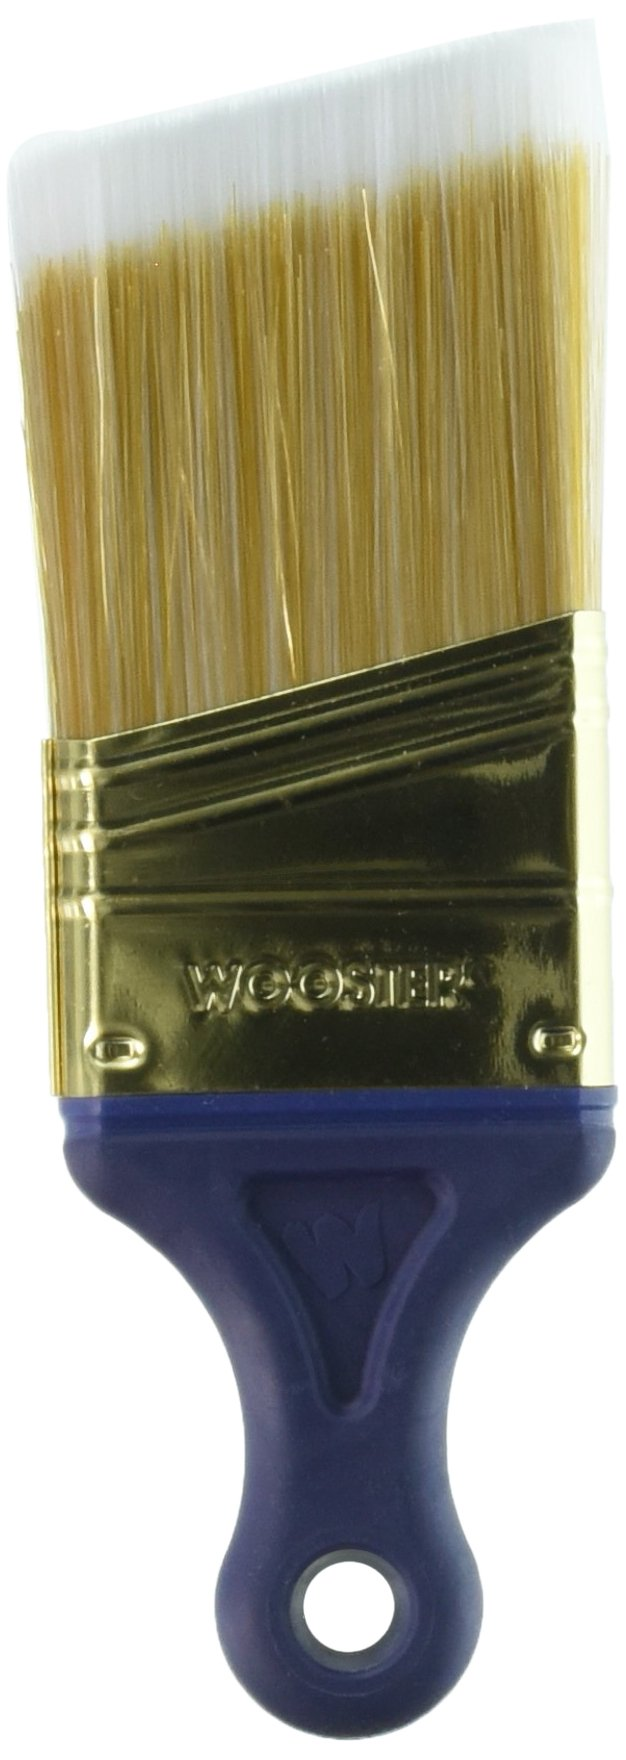 Wooster Brush Q3211-2 Shortcut Angle Sash Paintbrush, 2-Inch - Pack of 3